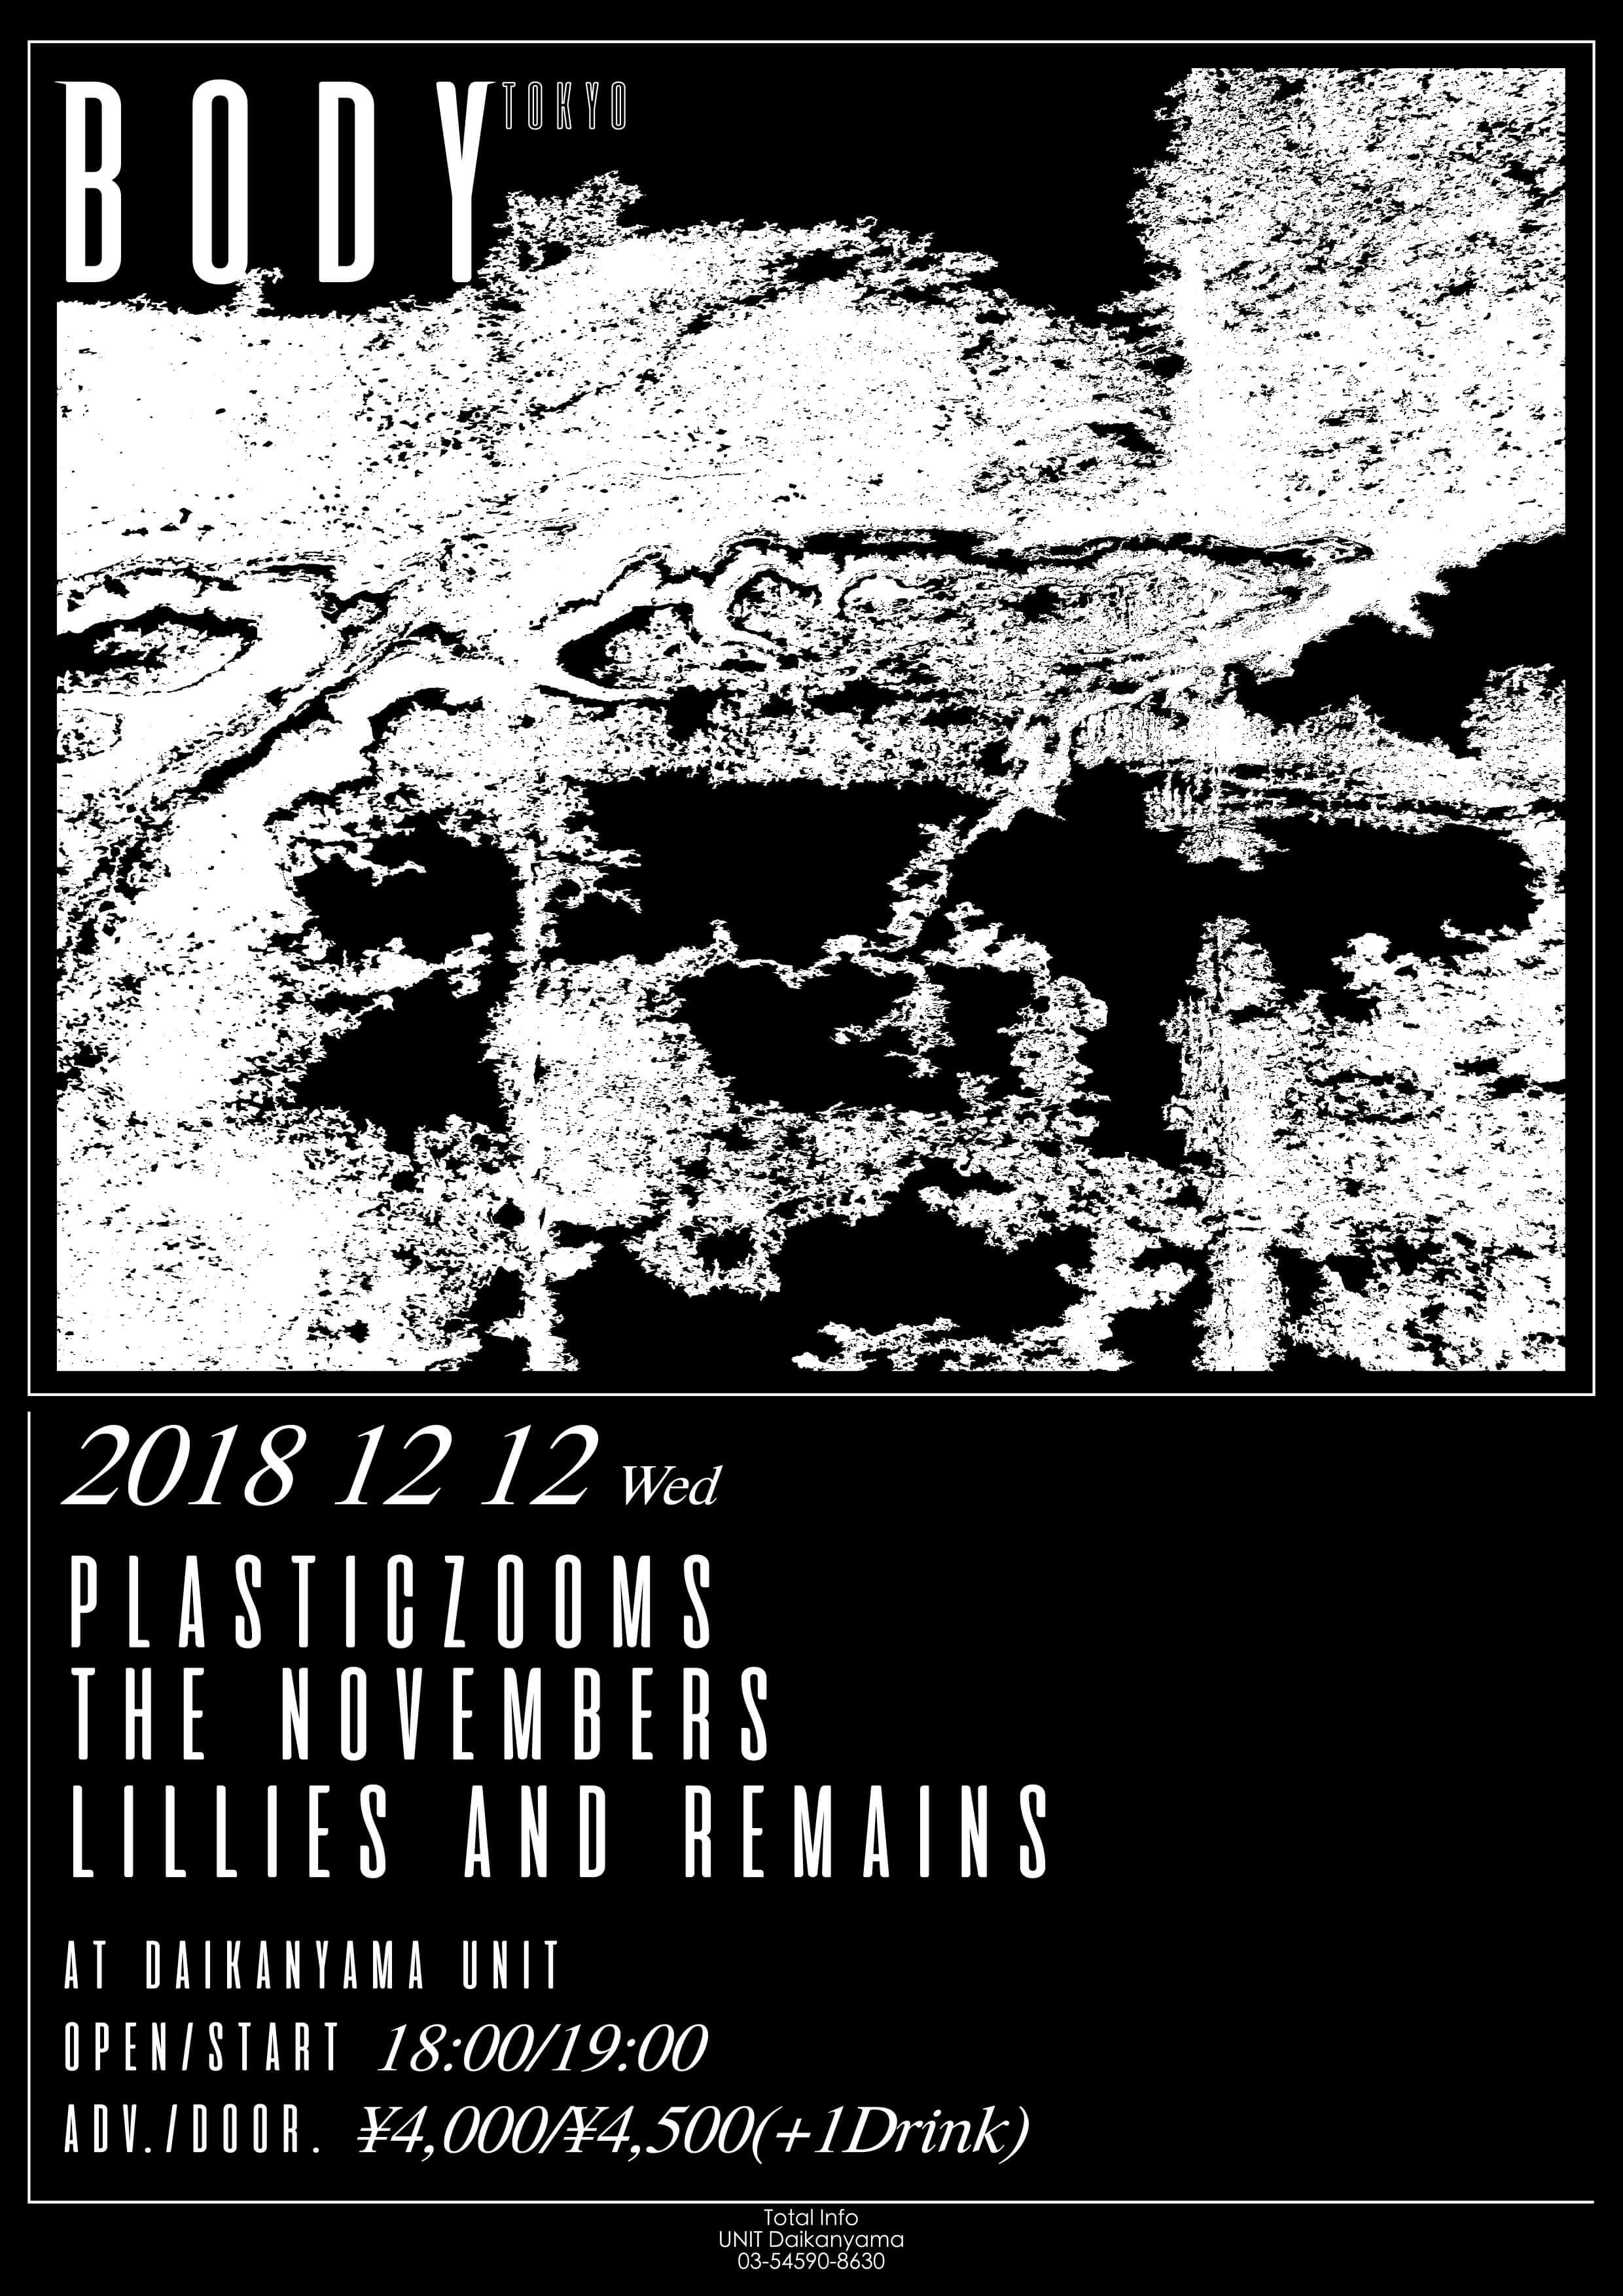 Lillies and Remains × PLASTICZOOMS × THE NOVEMBERSによる共同企画 「BODY」、12月開催決定!